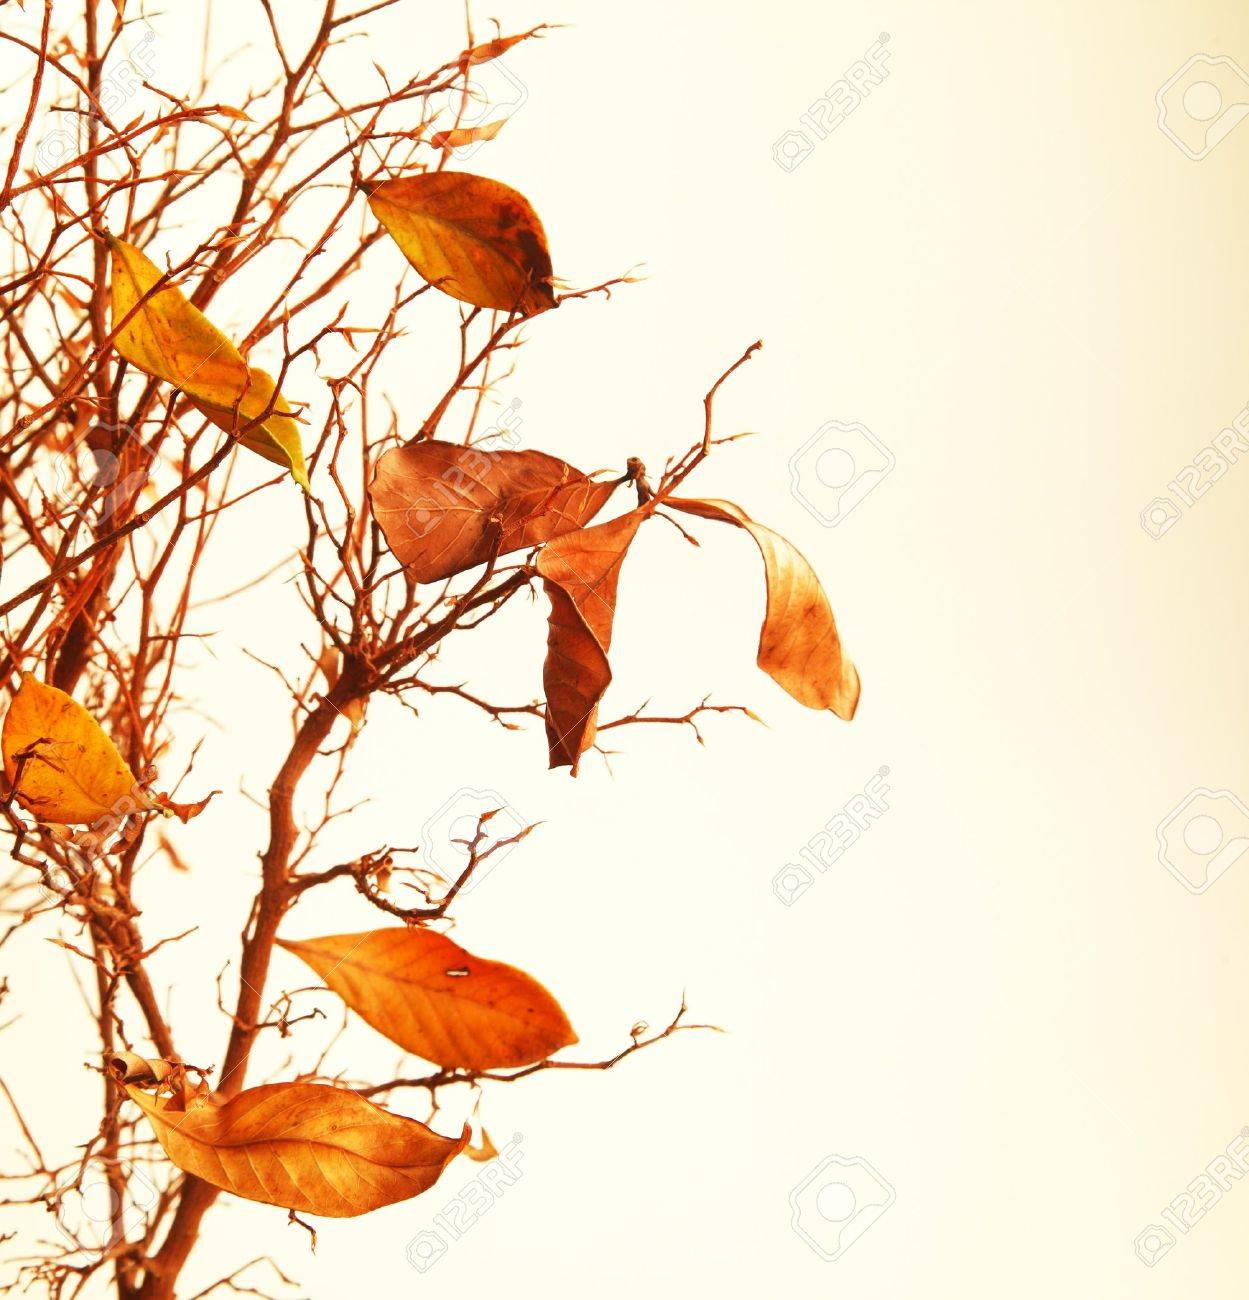 Autumnal tree branch with dry leaves Stock Photo - 7753269